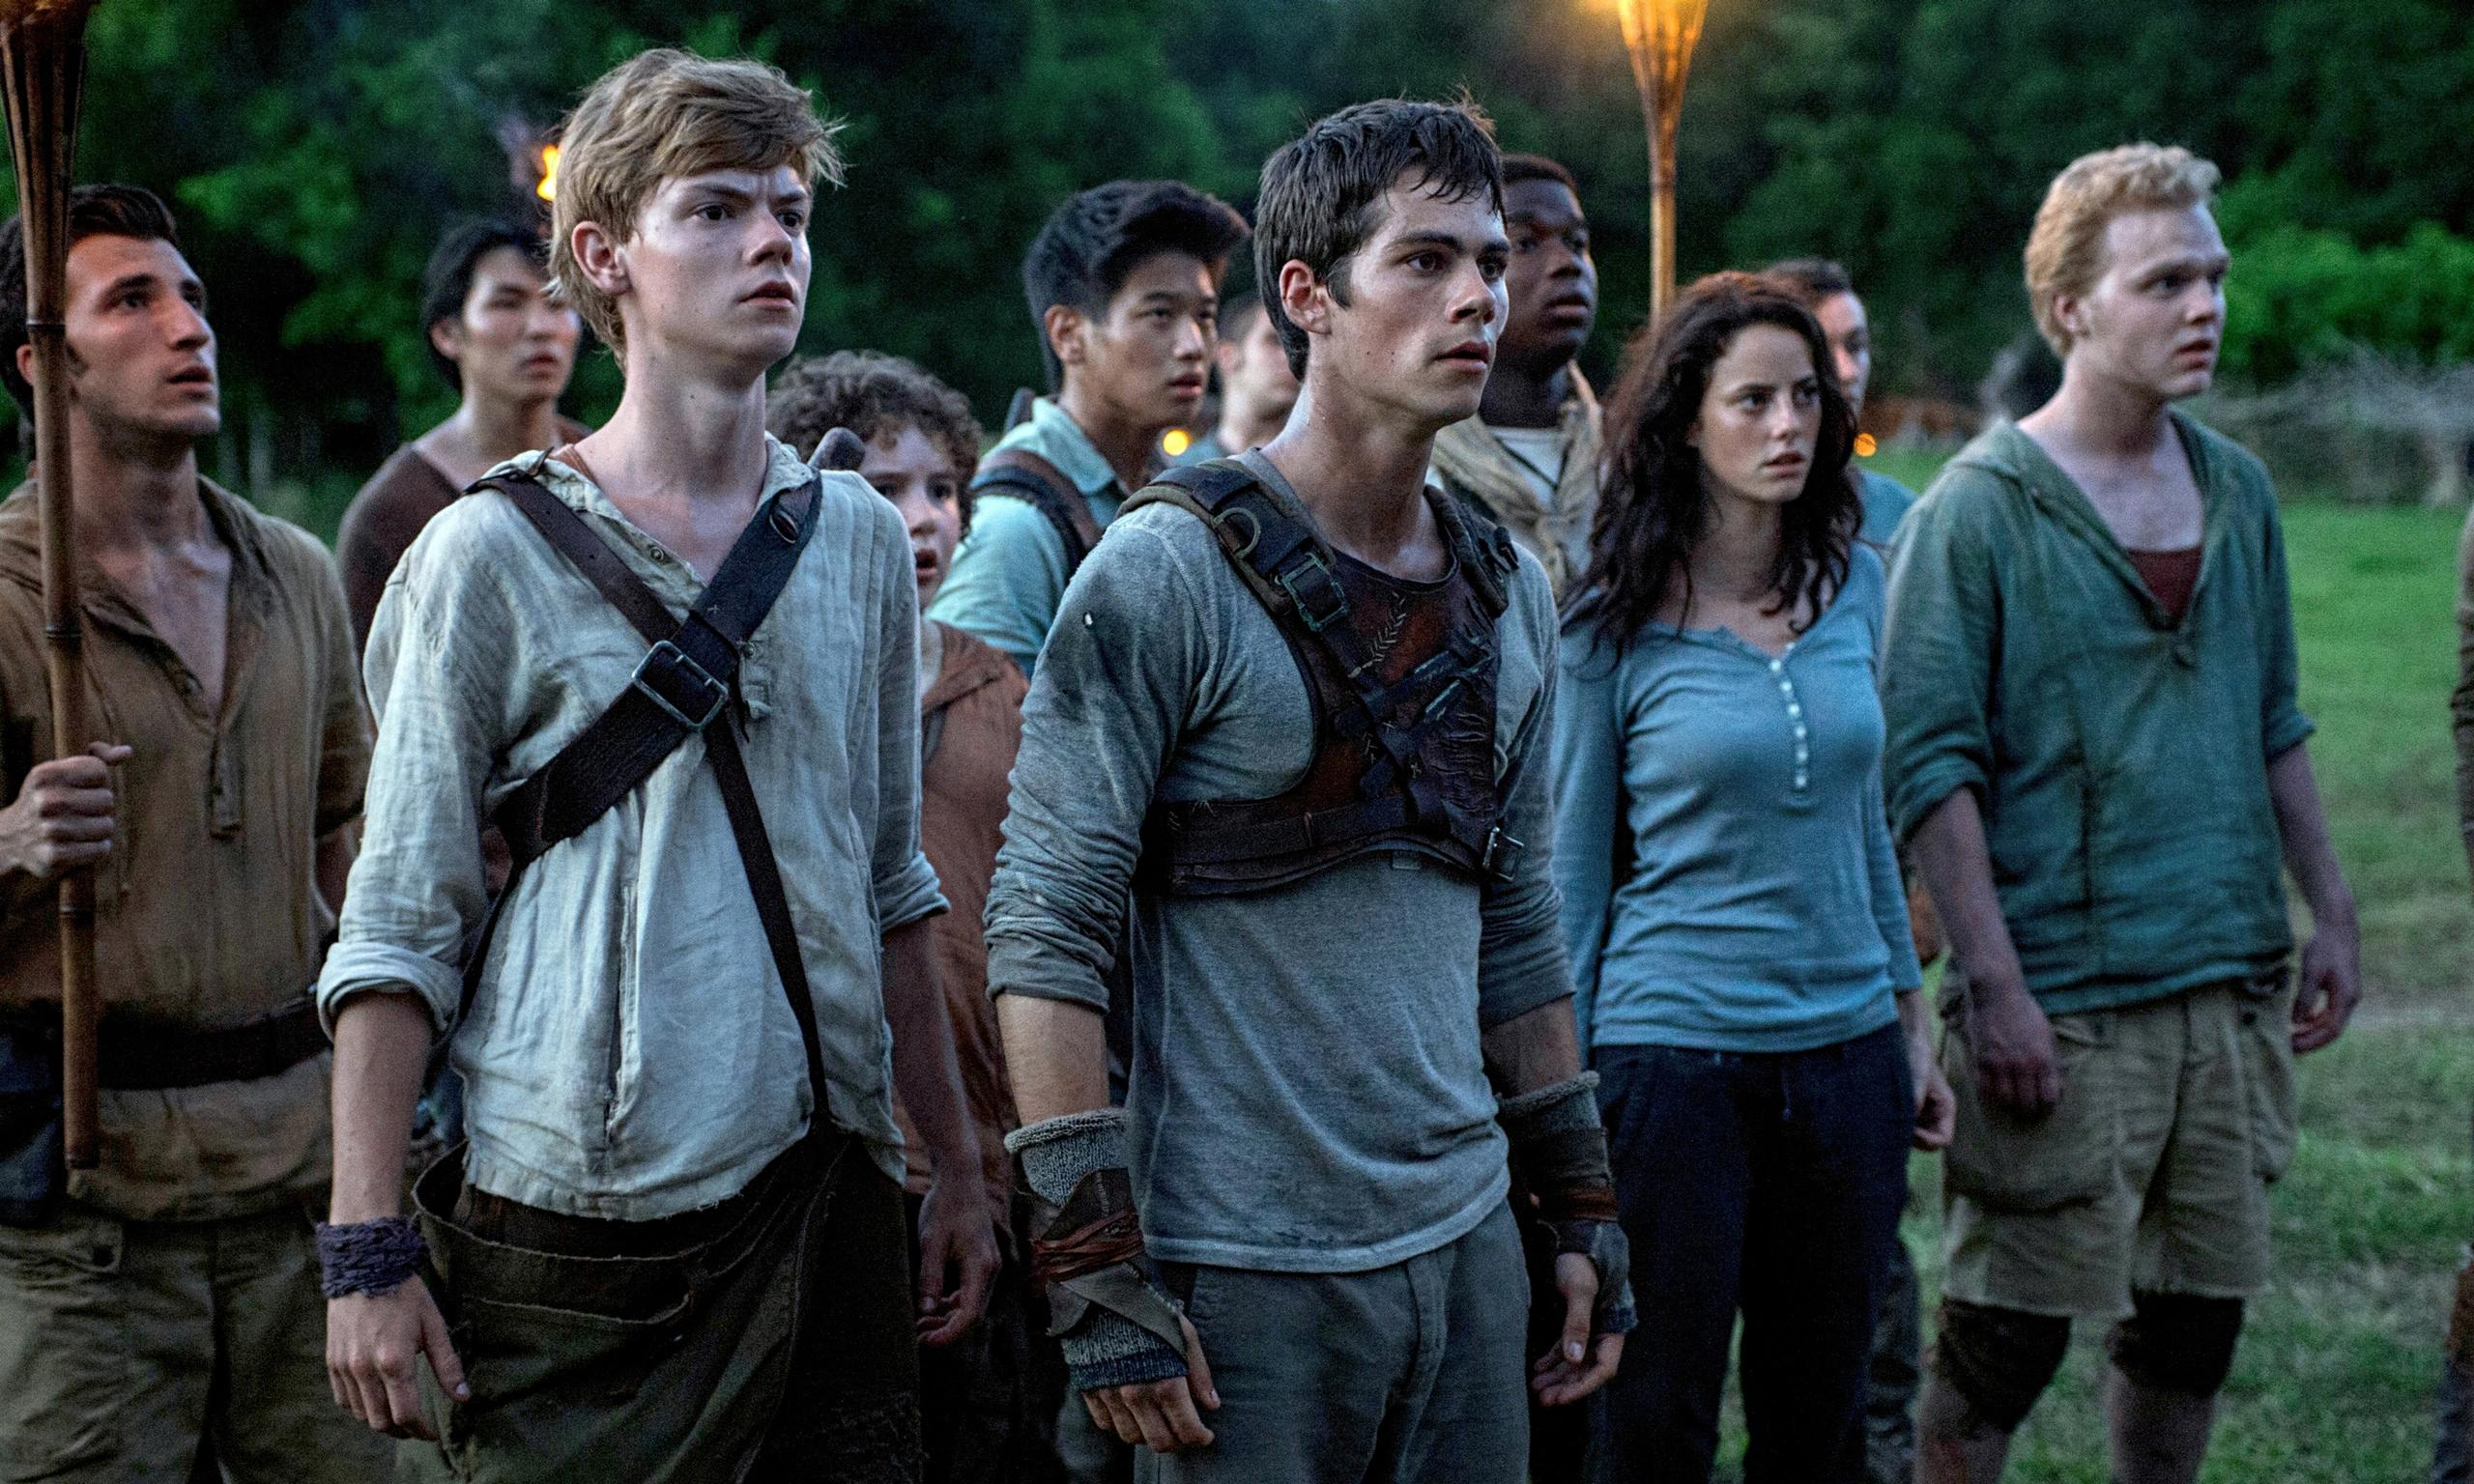 https://static-secure.guim.co.uk/sys-images/Guardian/Pix/pictures/2014/10/8/1412778595859/The-Maze-Runner-2014-014.jpg